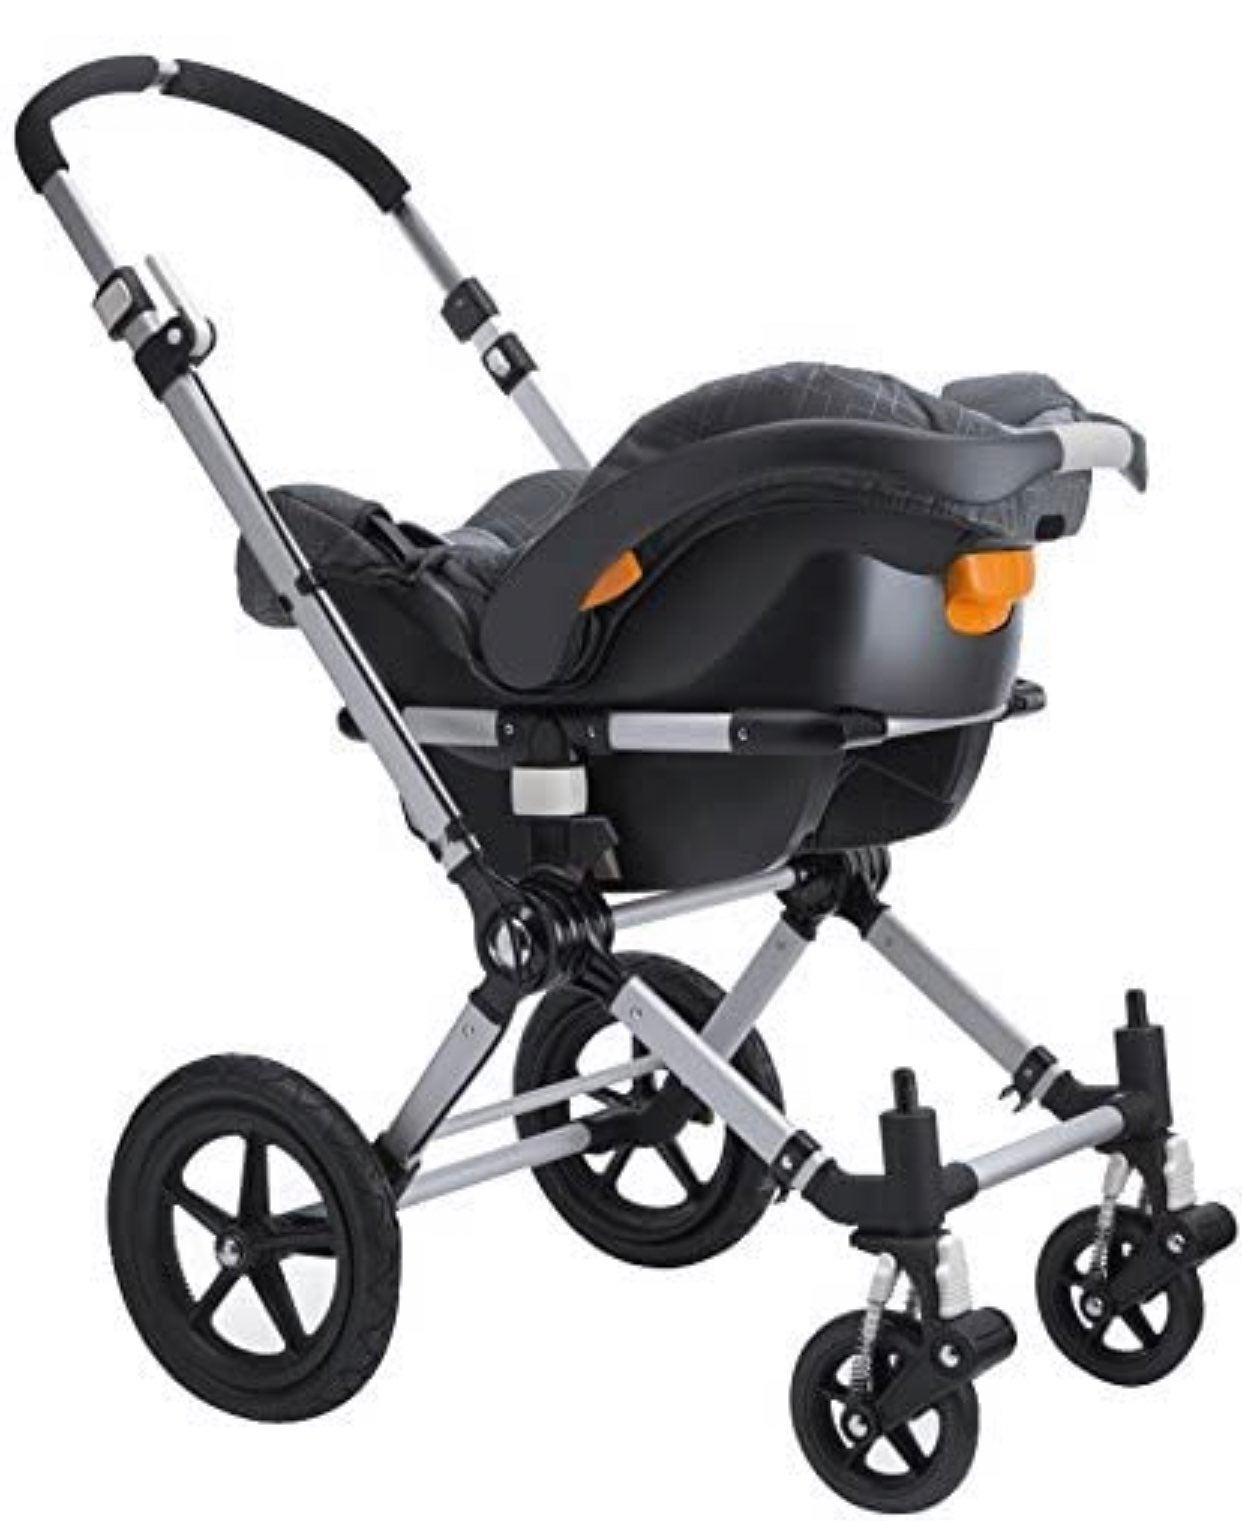 Bugaboo Chameleon carseat adpater